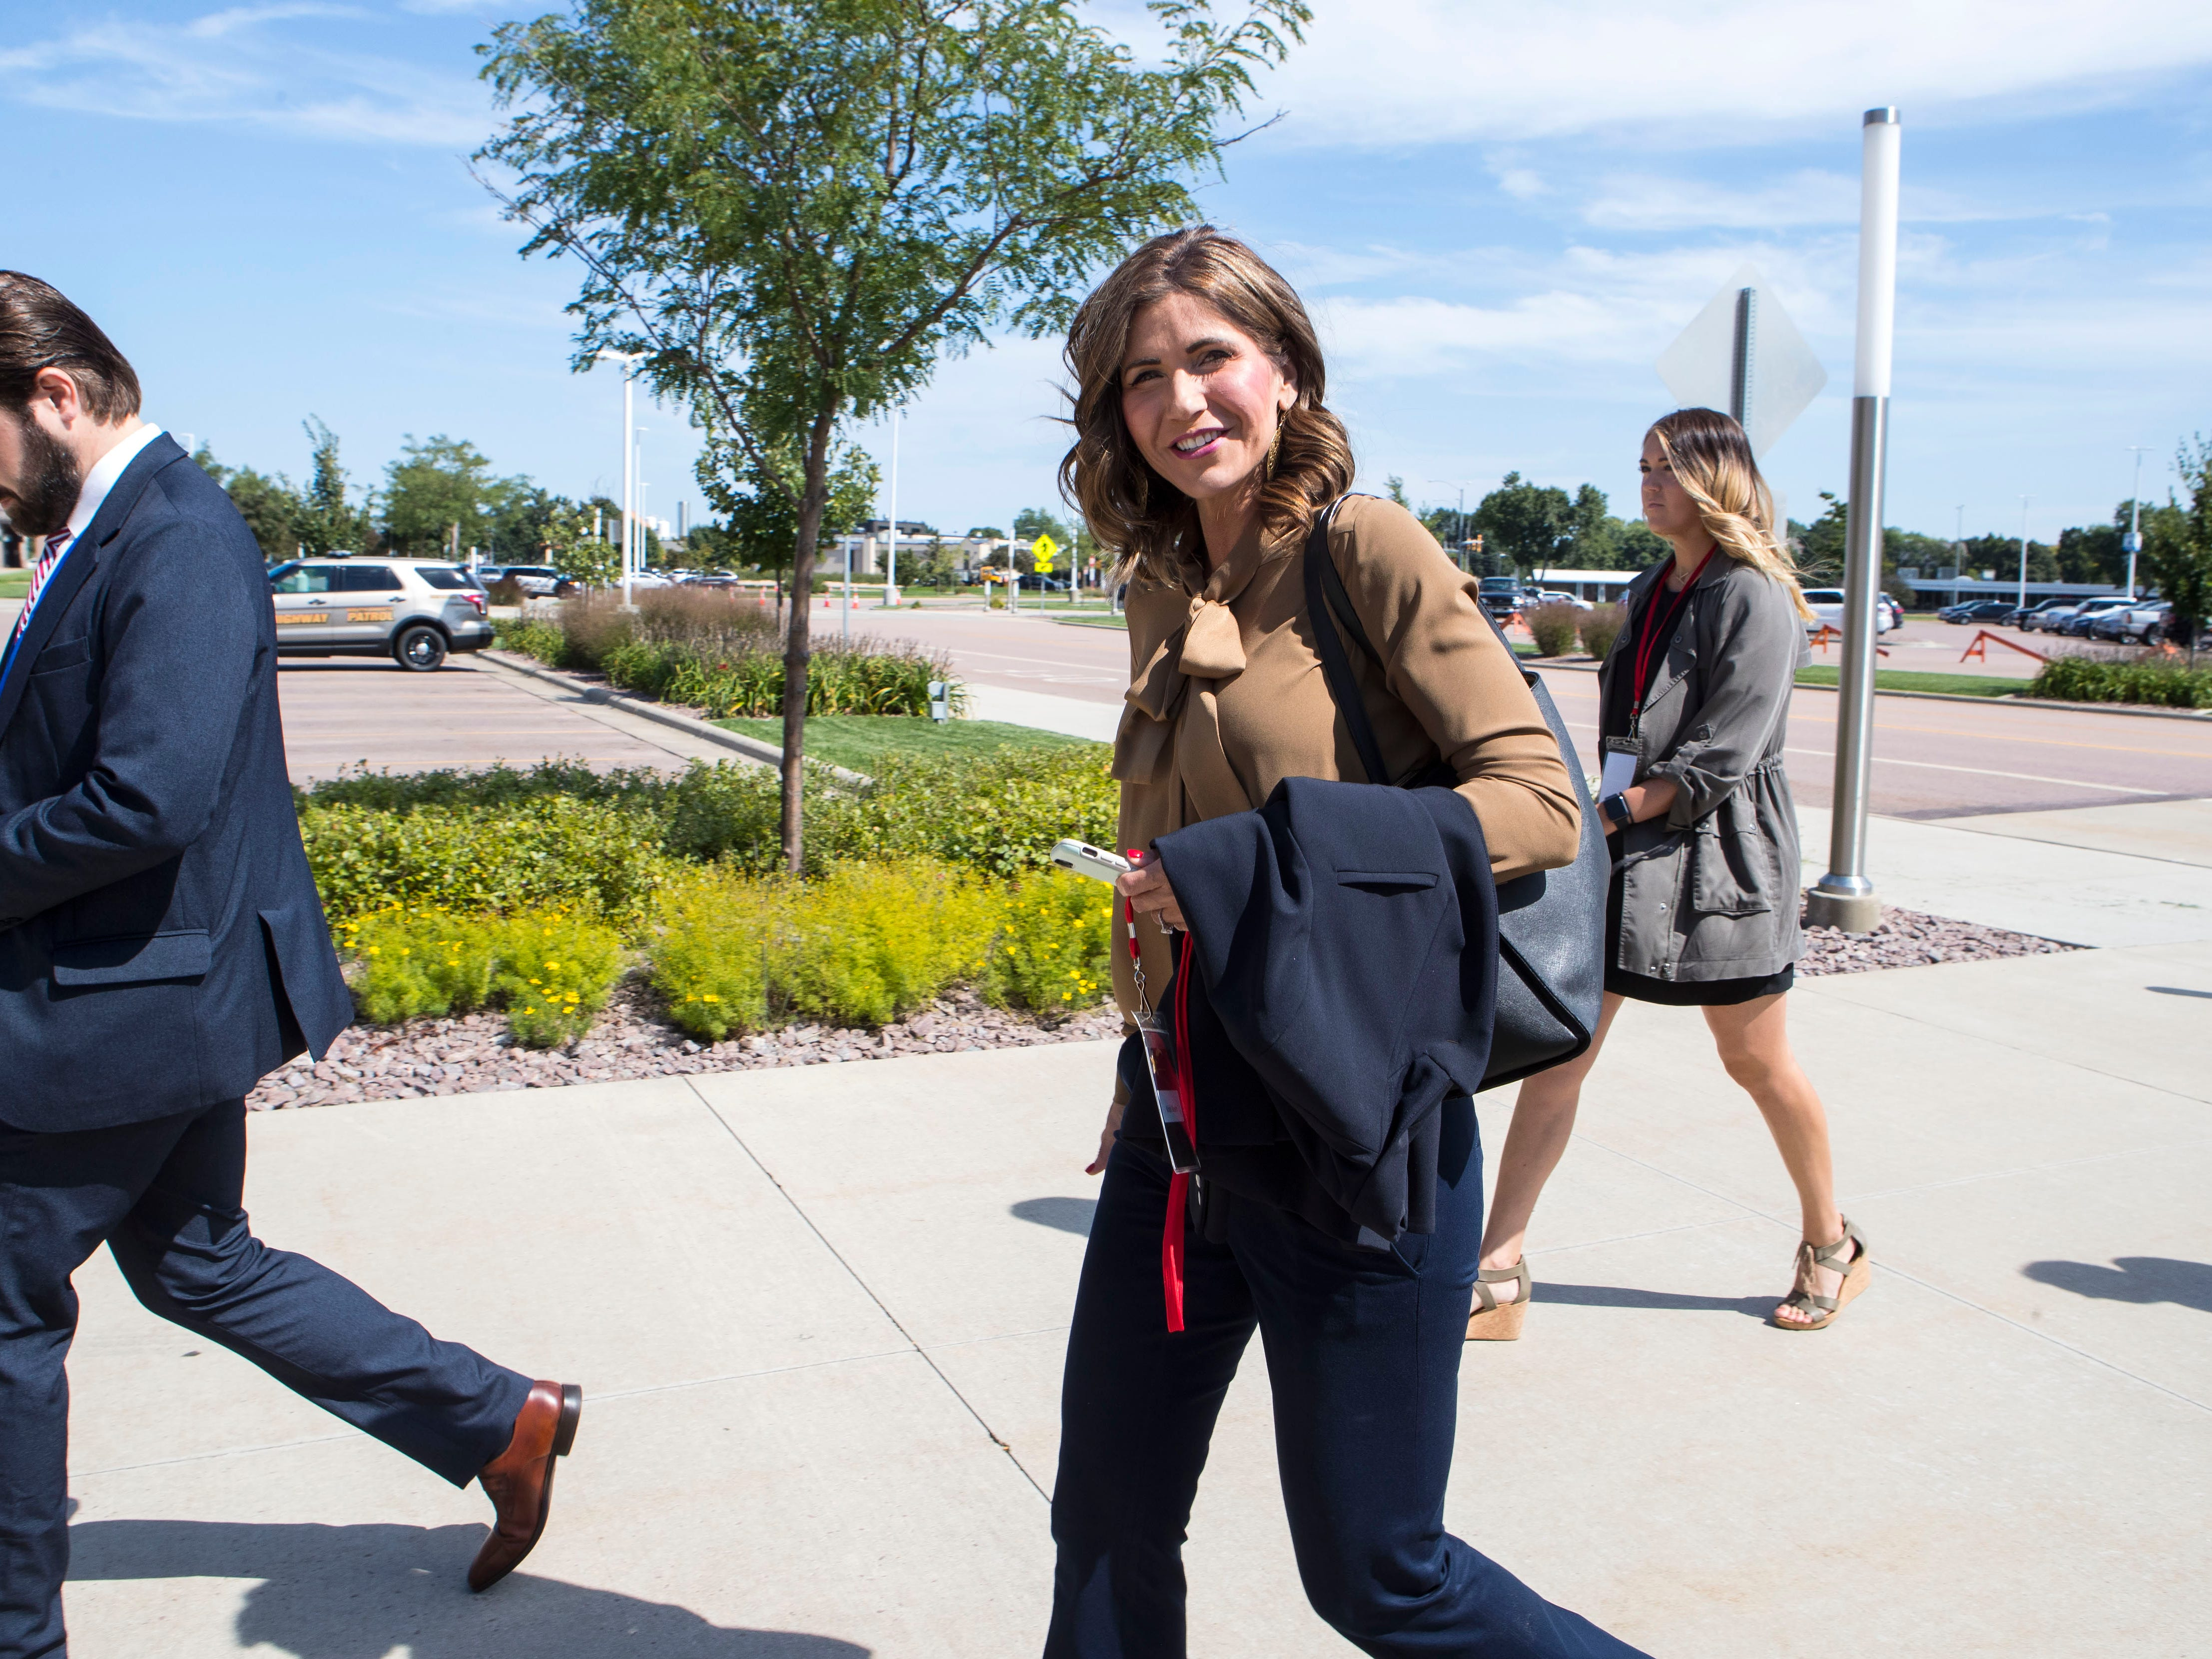 Republican gubernatorial hopeful Kristi Noem walks into the Sioux Falls Convention Center on Friday, Sept. 7, 2018 in Sioux Falls, S.D.